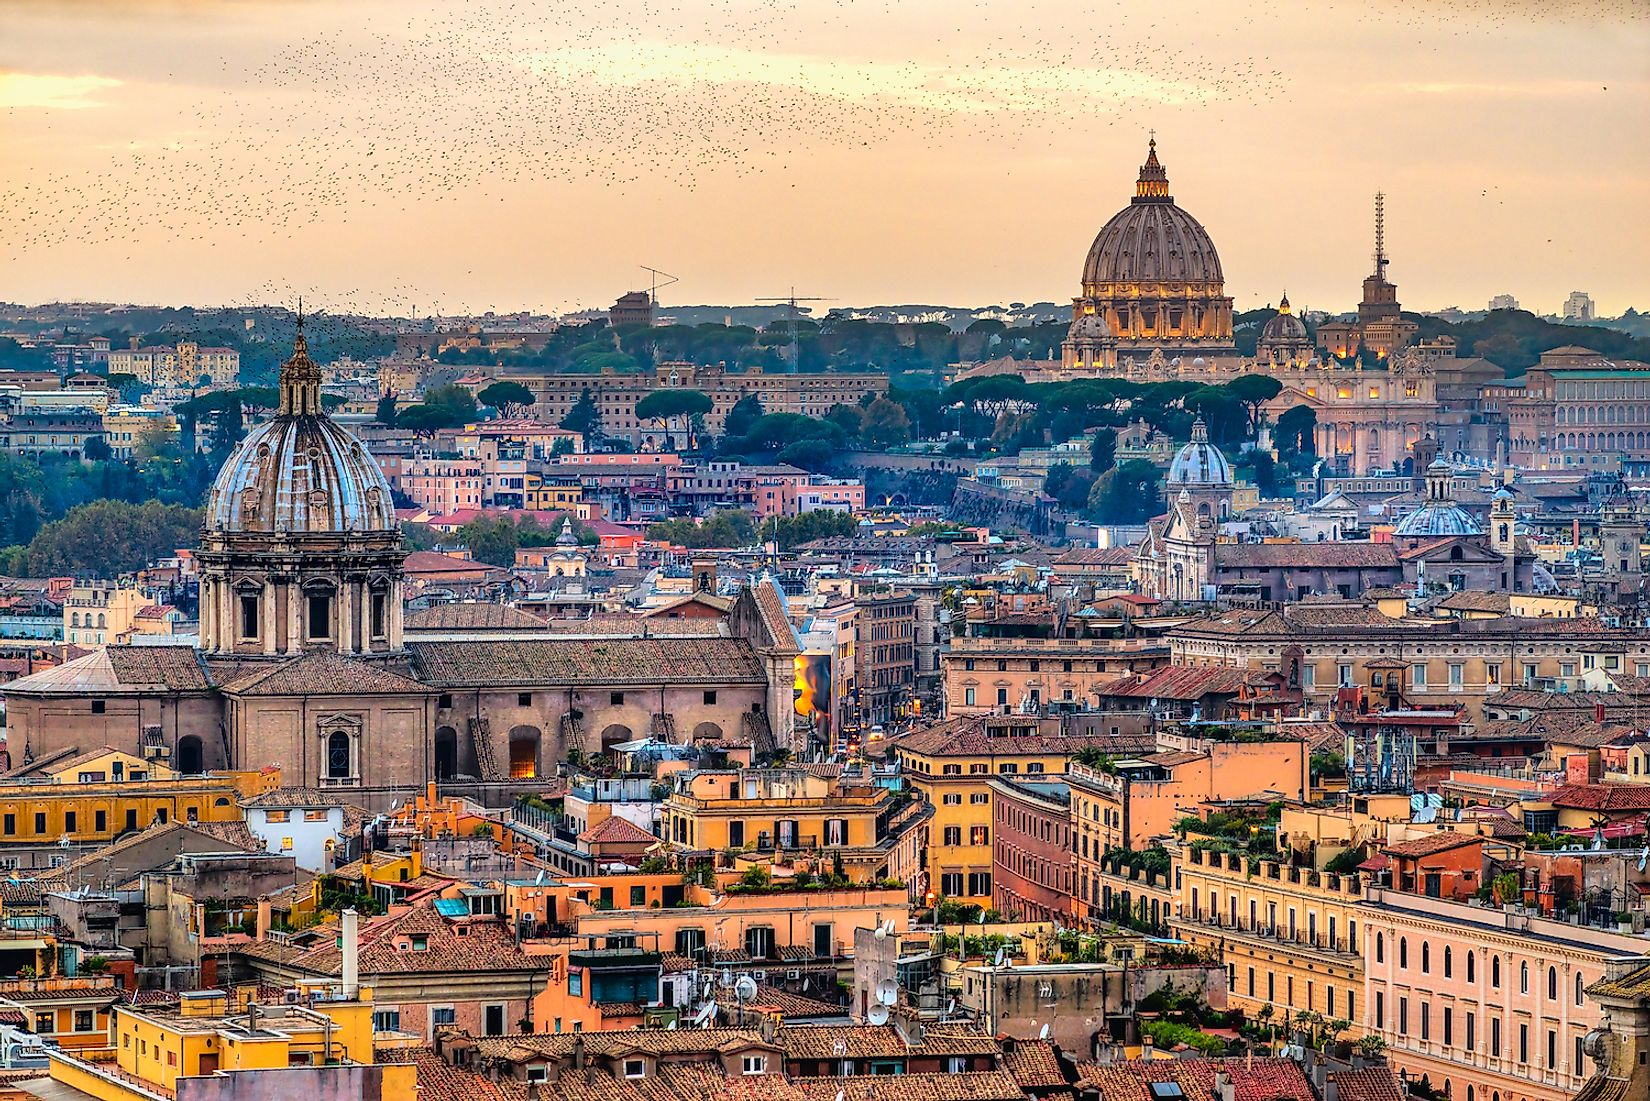 The skyline of Rome, the most populated city of Italy.